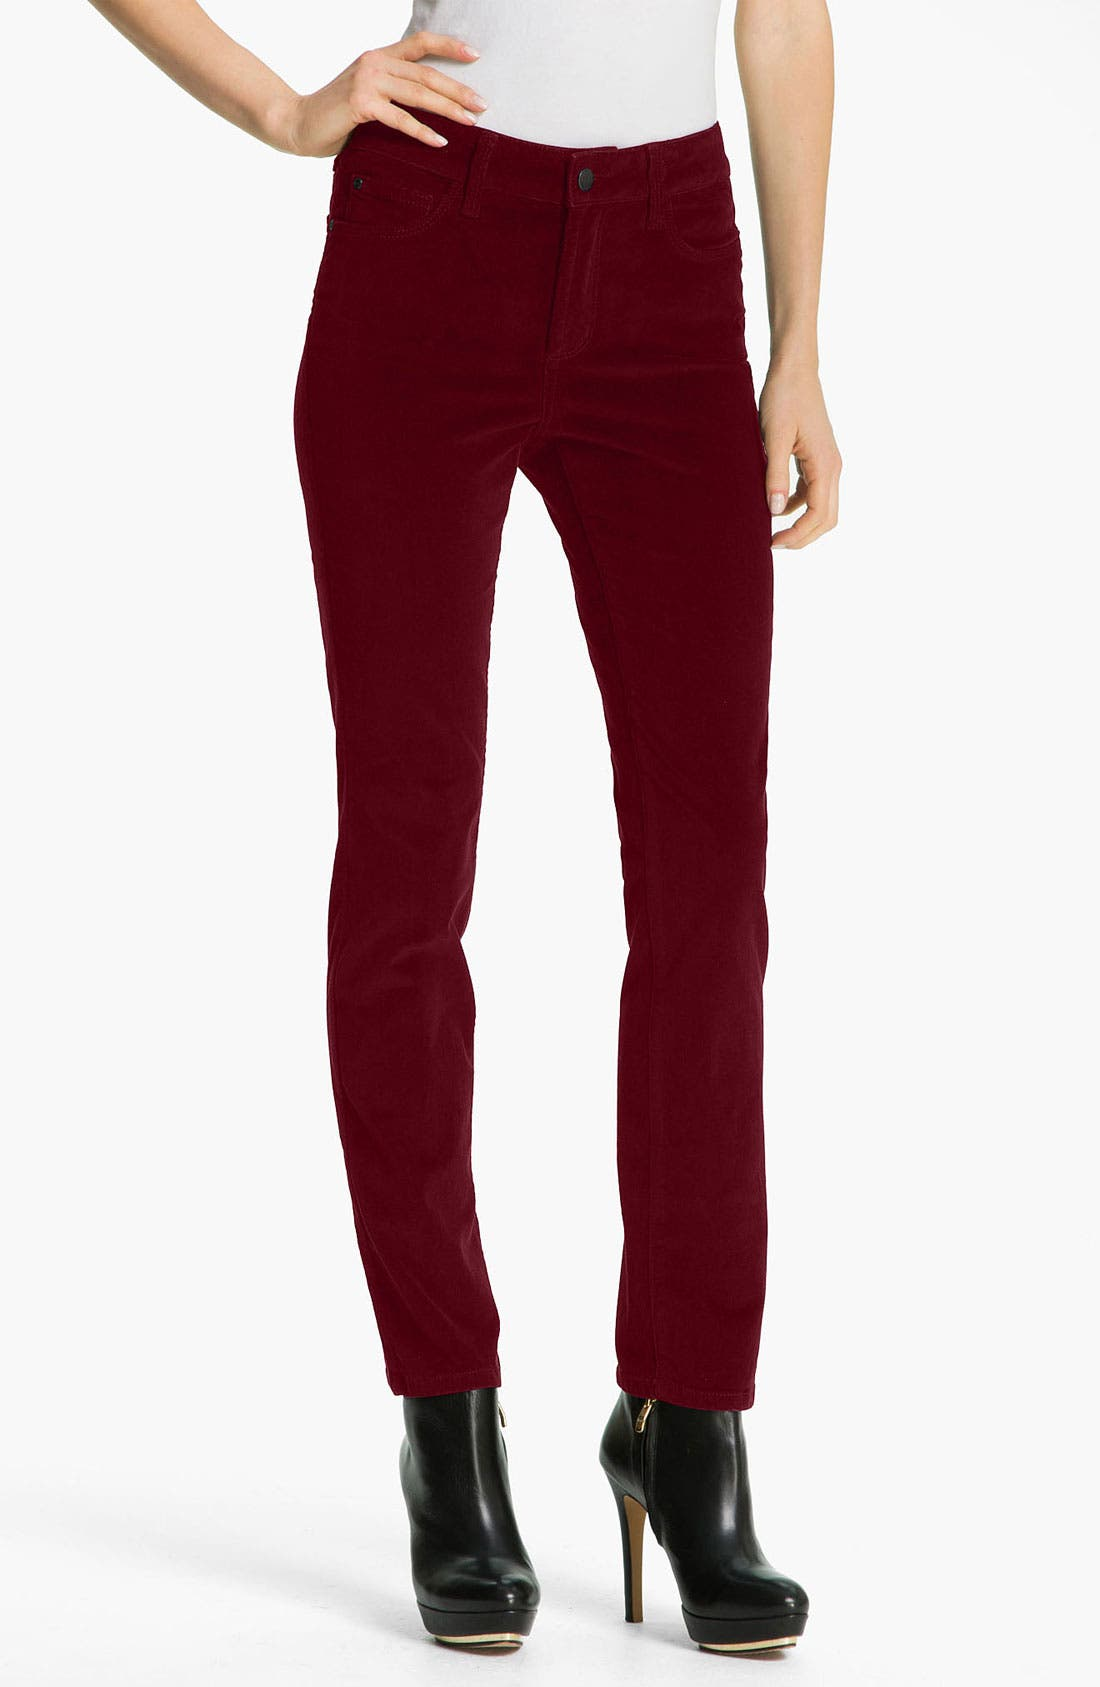 Alternate Image 1 Selected - NYDJ Skinny Corduroy Jeans (Petite)